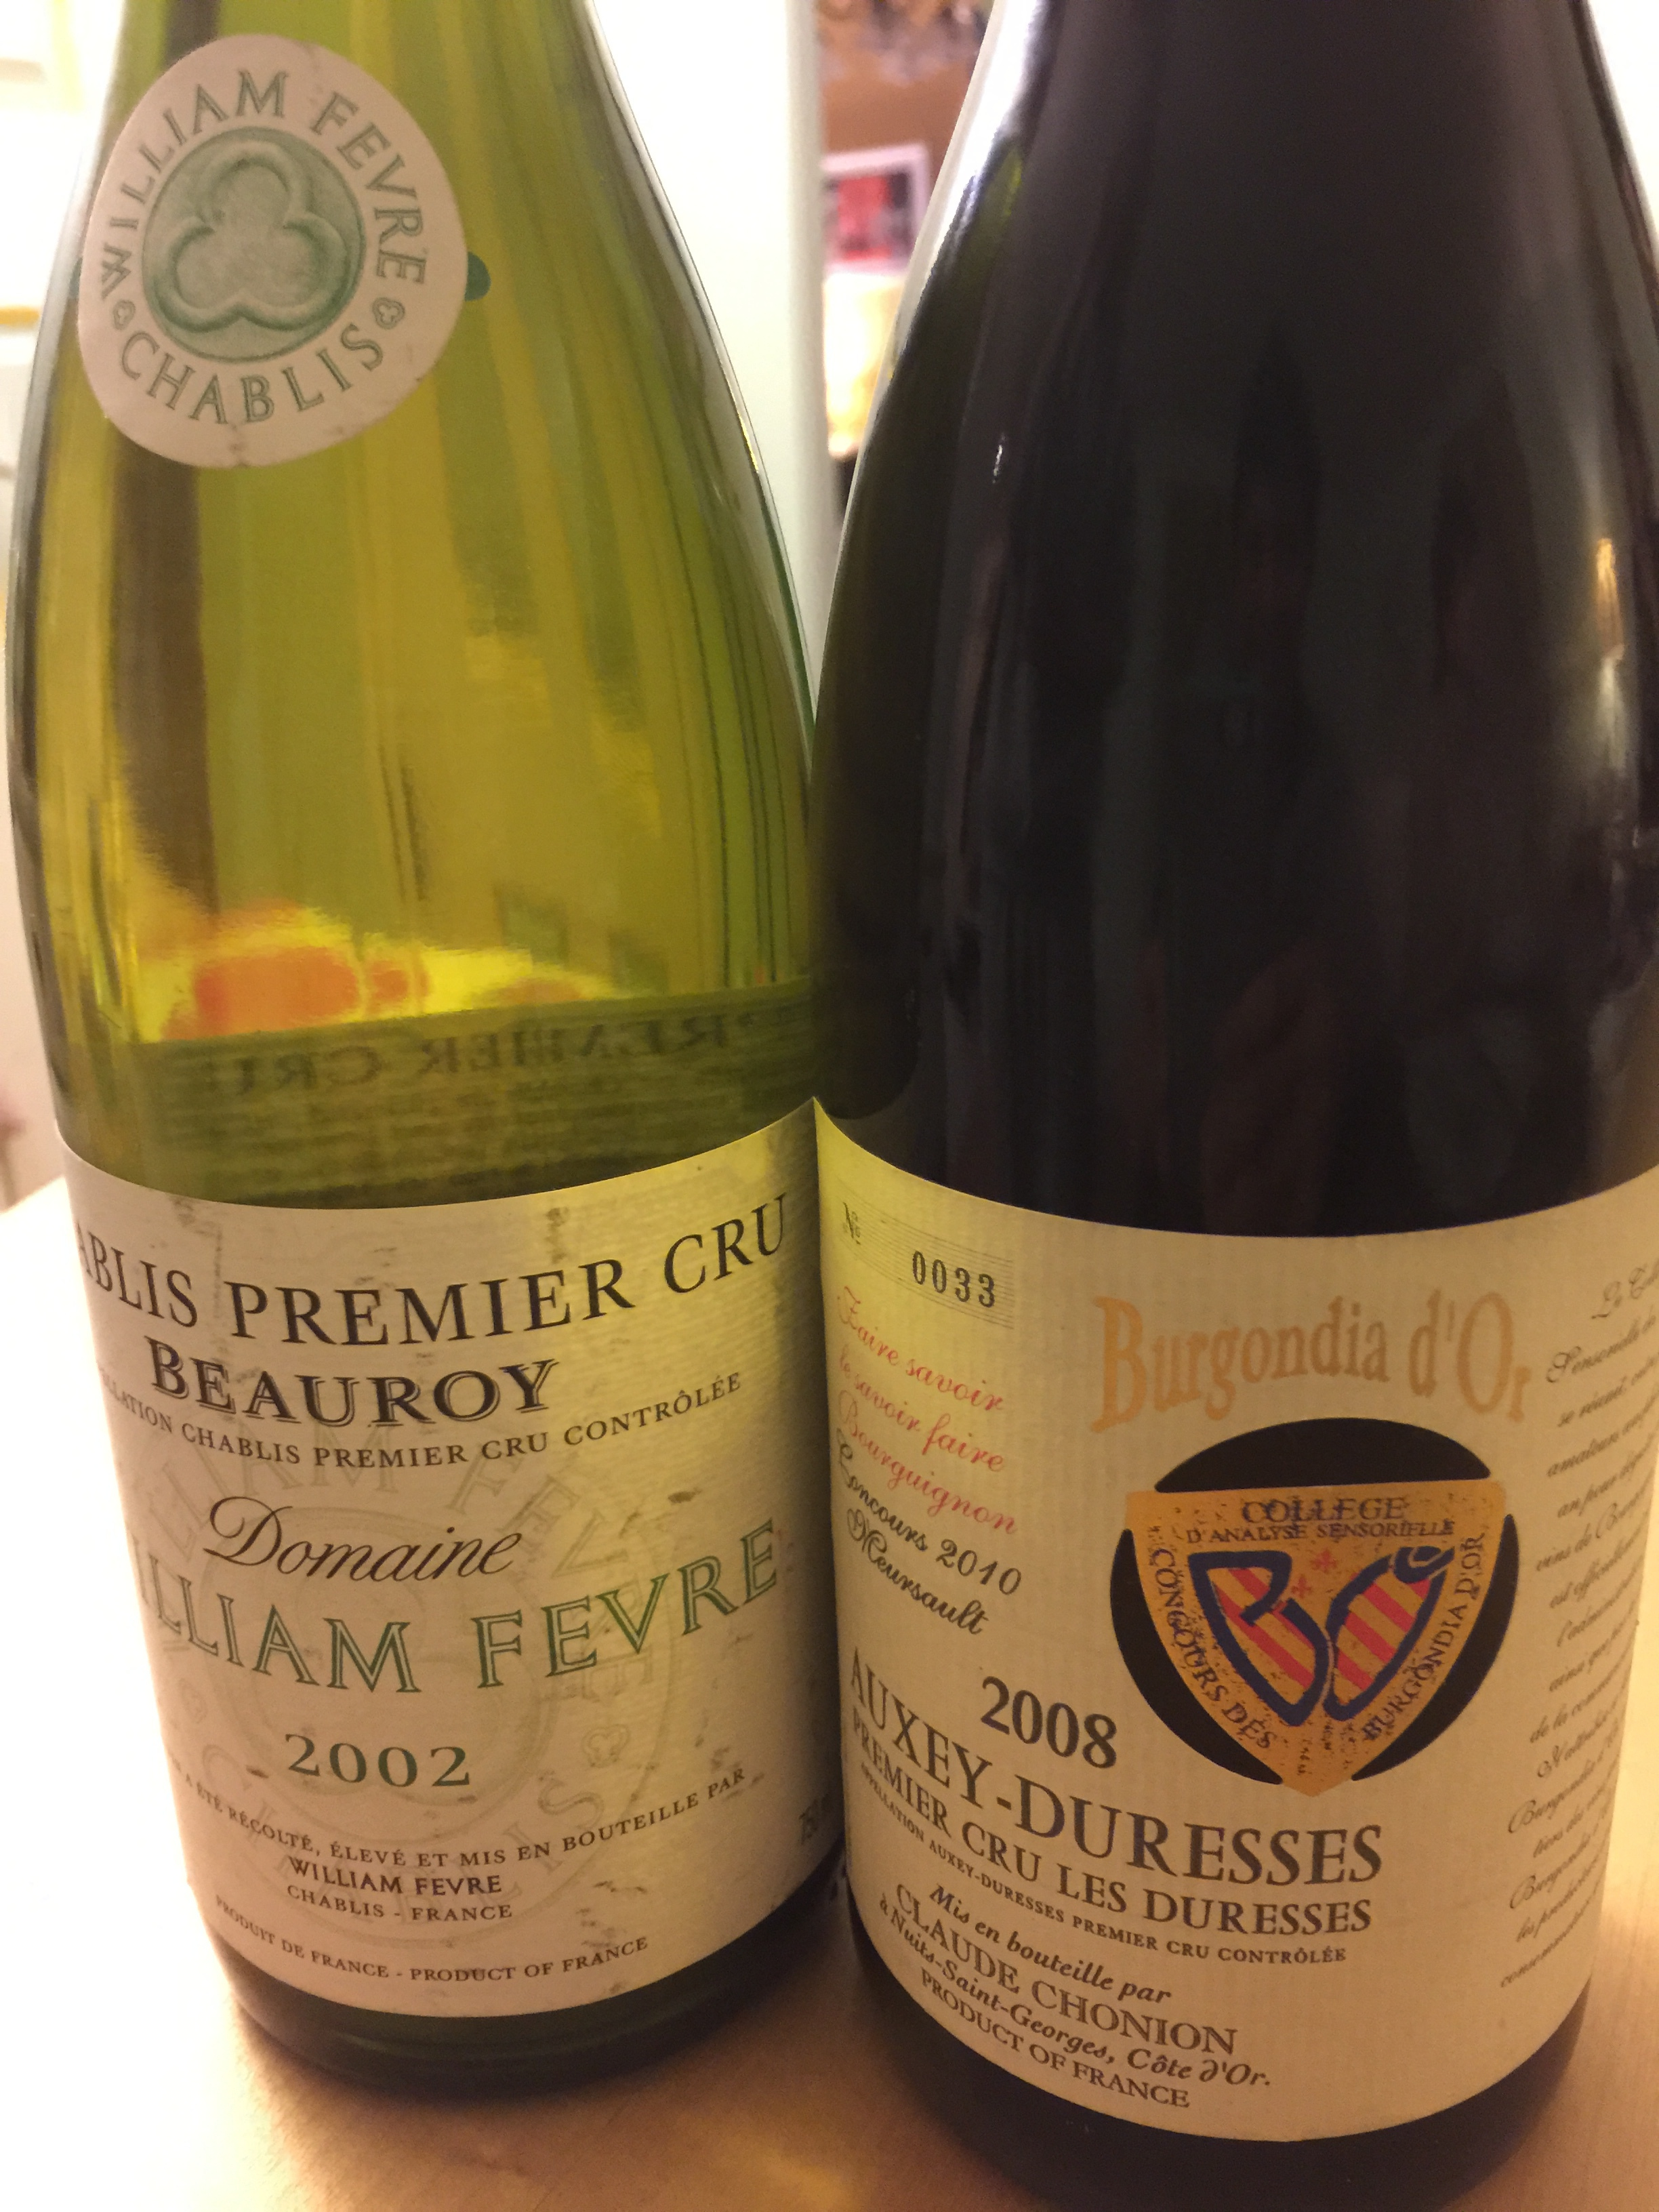 Chablis premier cru for white and Auxry-Duresses for red